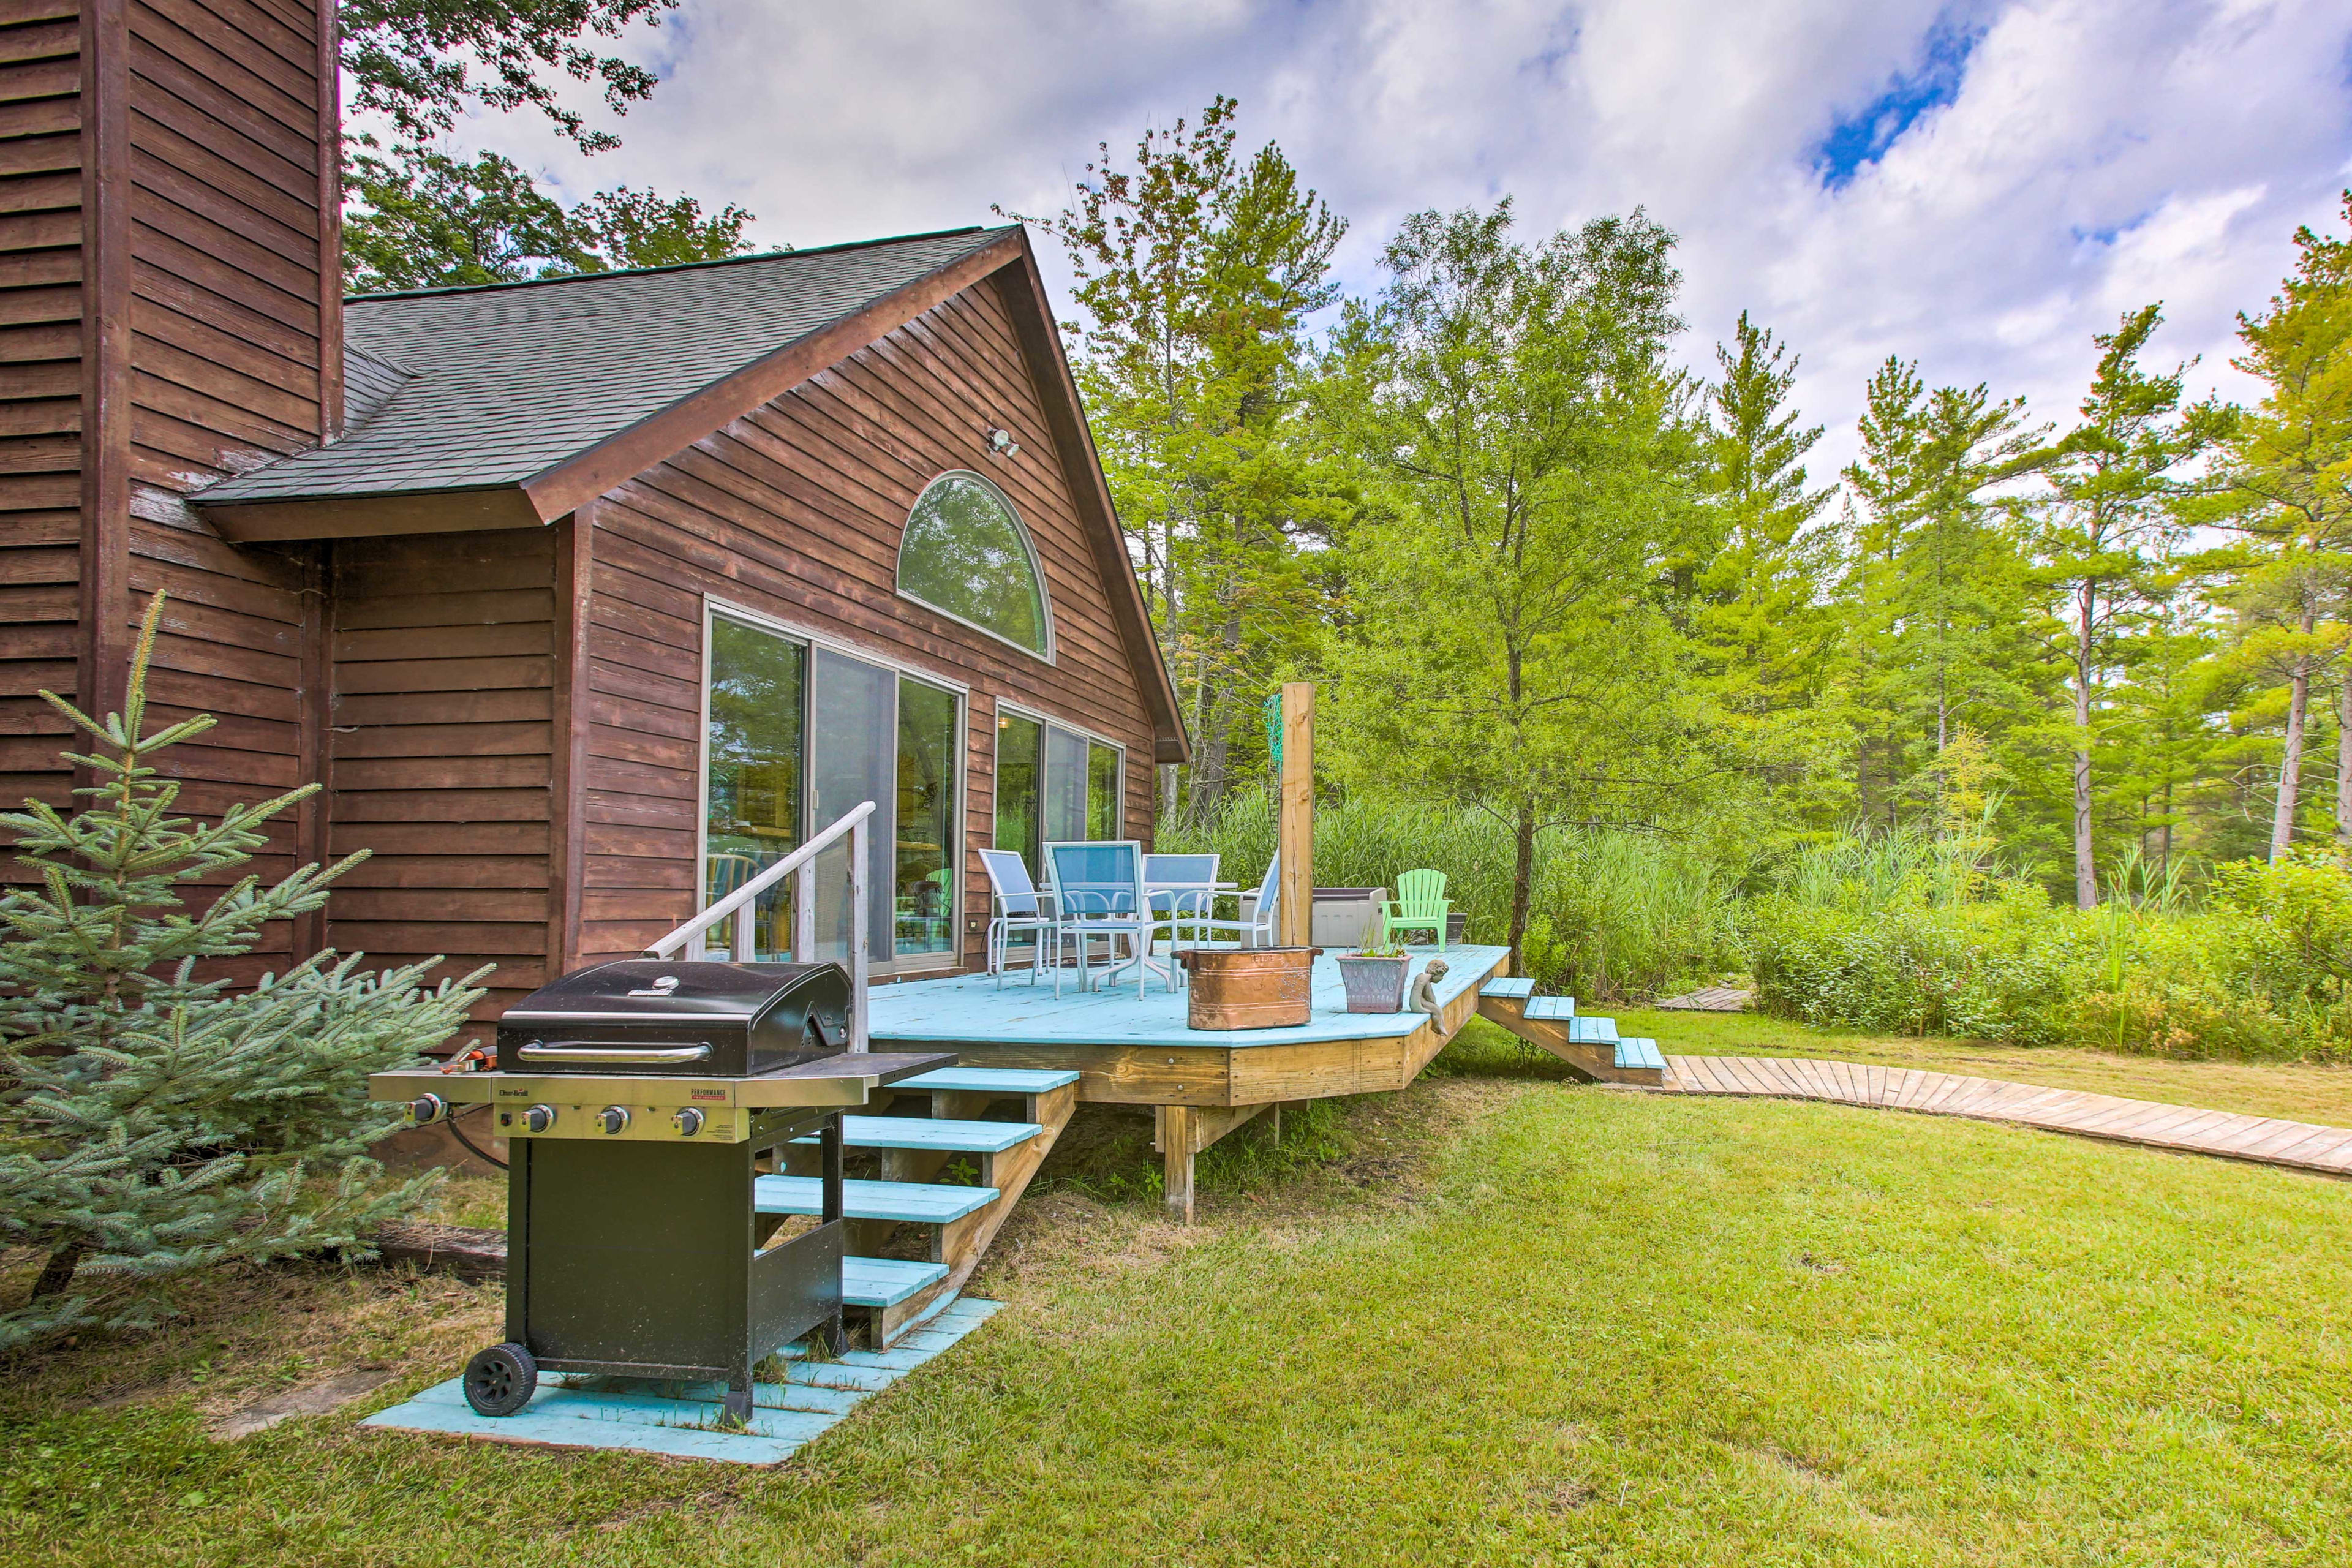 Up to 7 guests can stay at this Traverse City home.